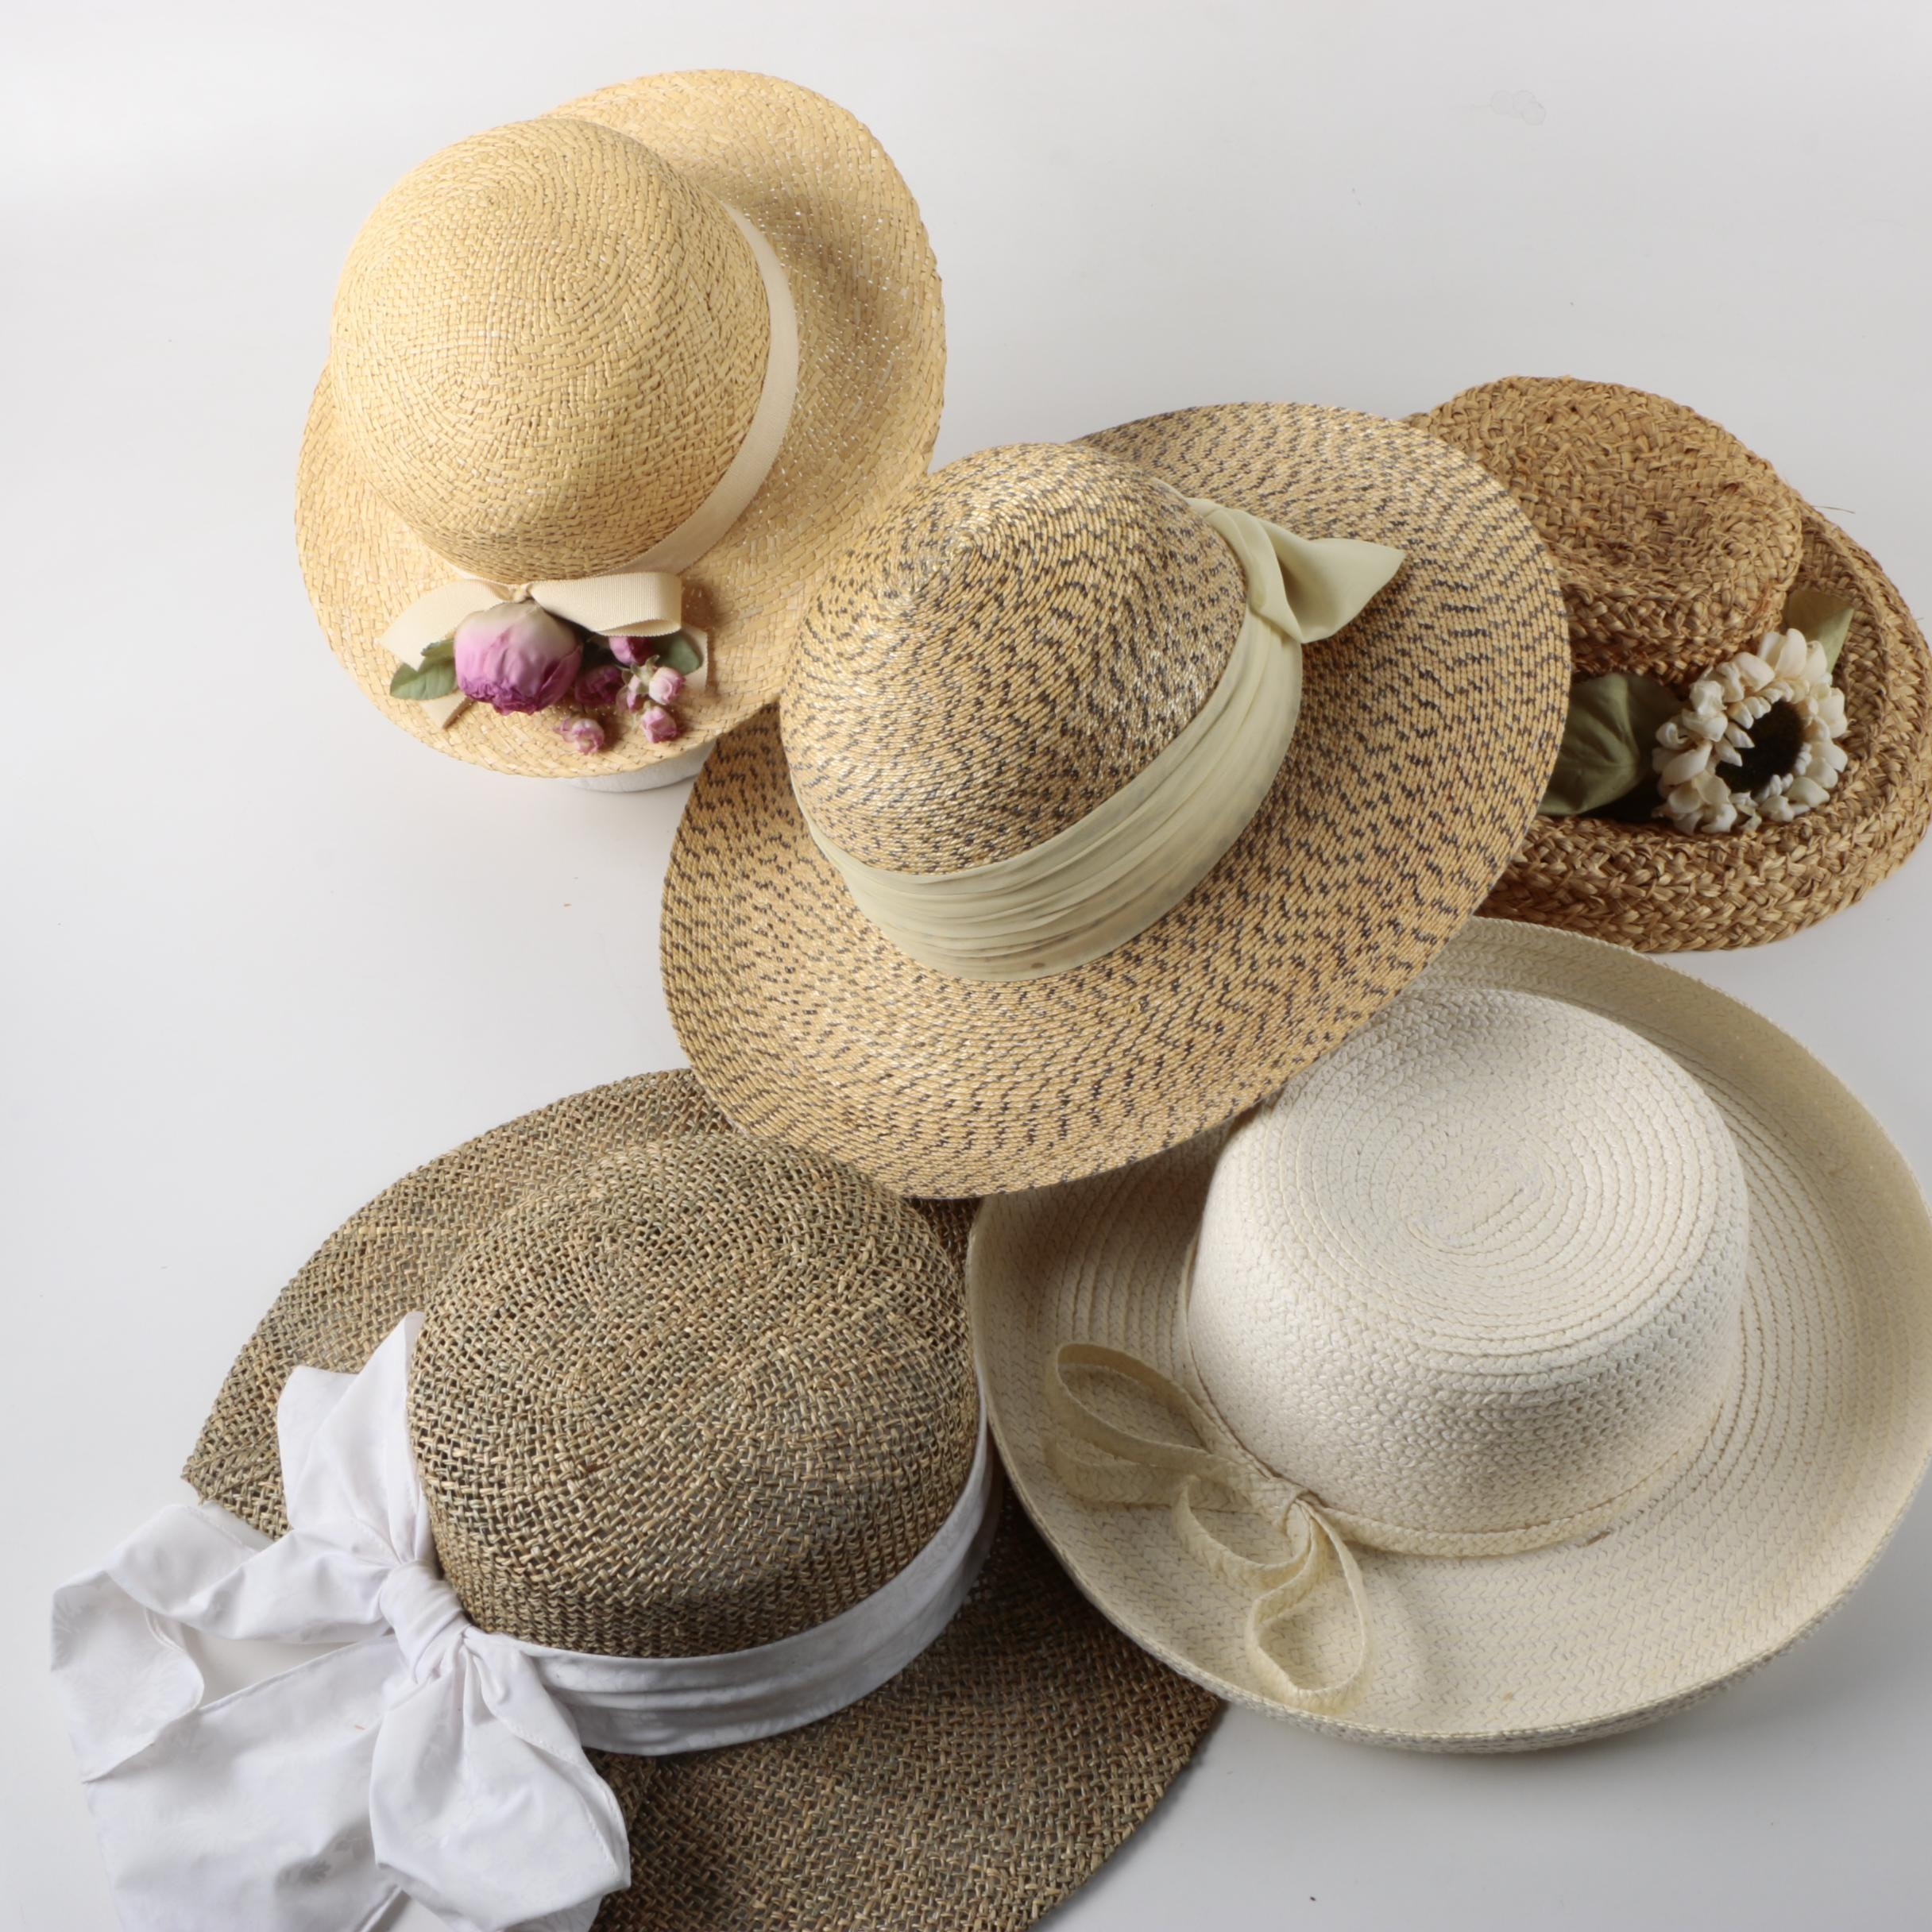 Women's Straw Sun Hats with Ribbons and Flowers Including Betmar